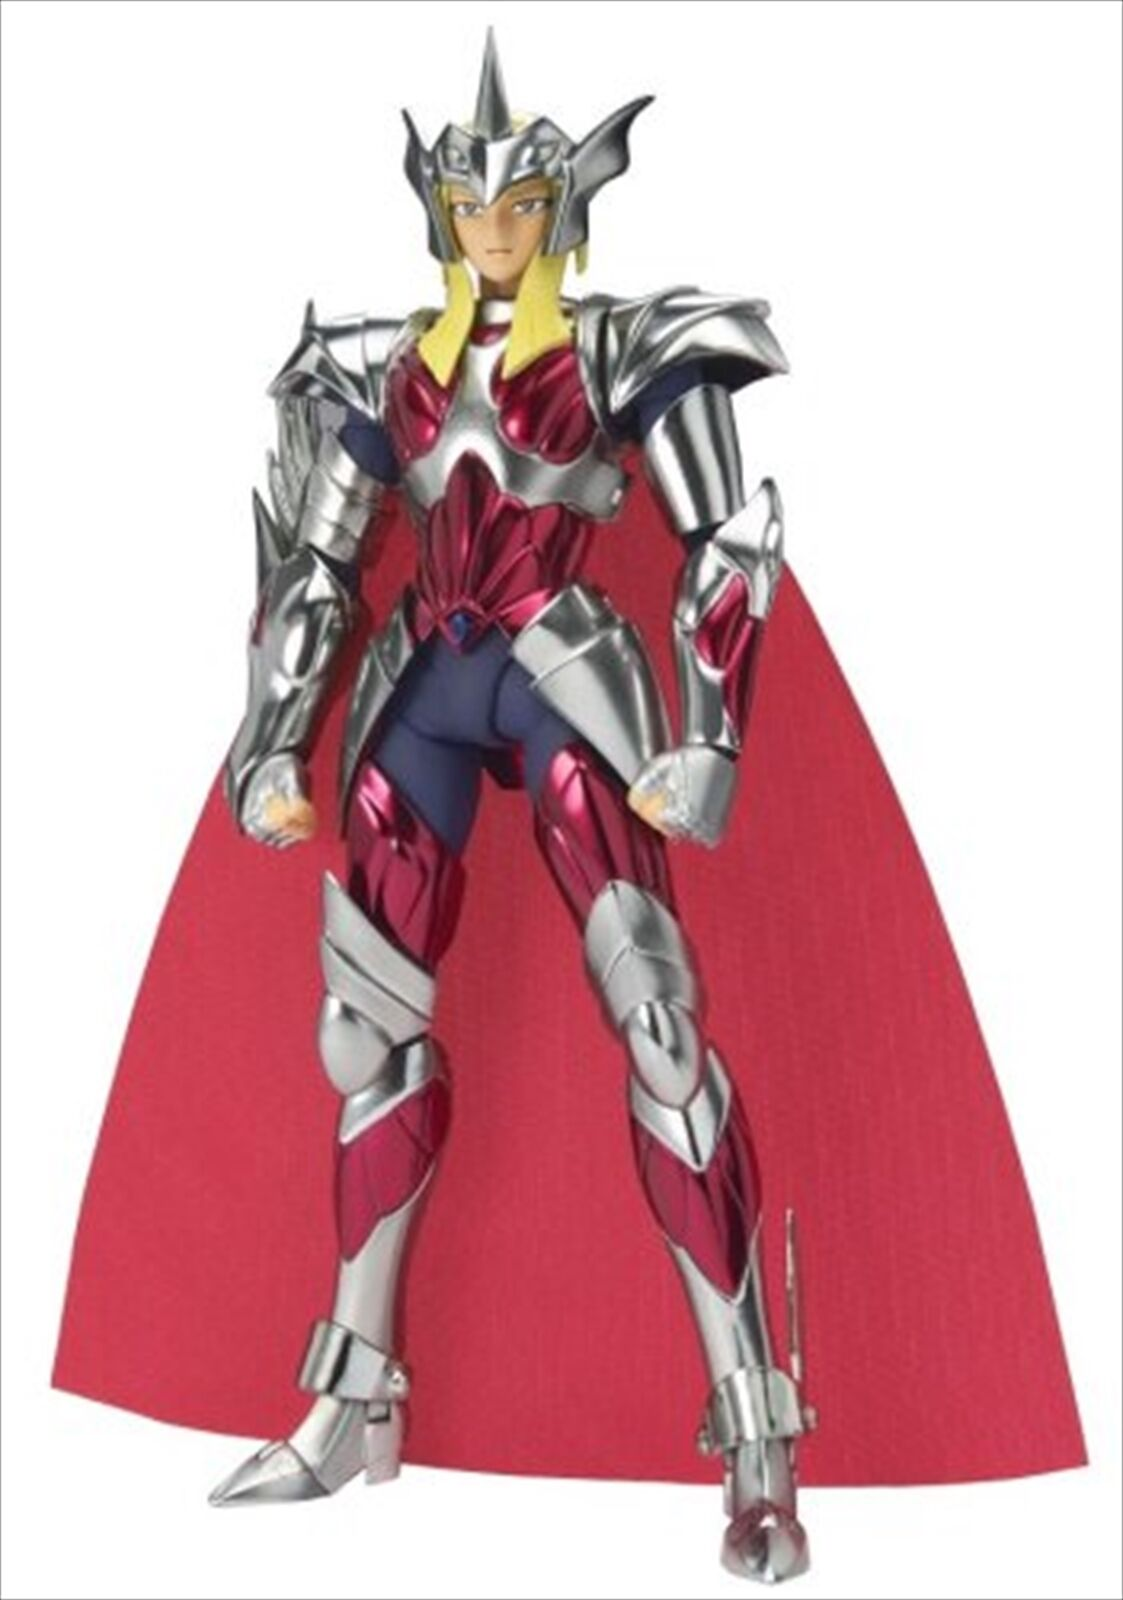 Bandai Saint Seiya Cloth Myth Asgard Beta Merak Hagen Action Figure